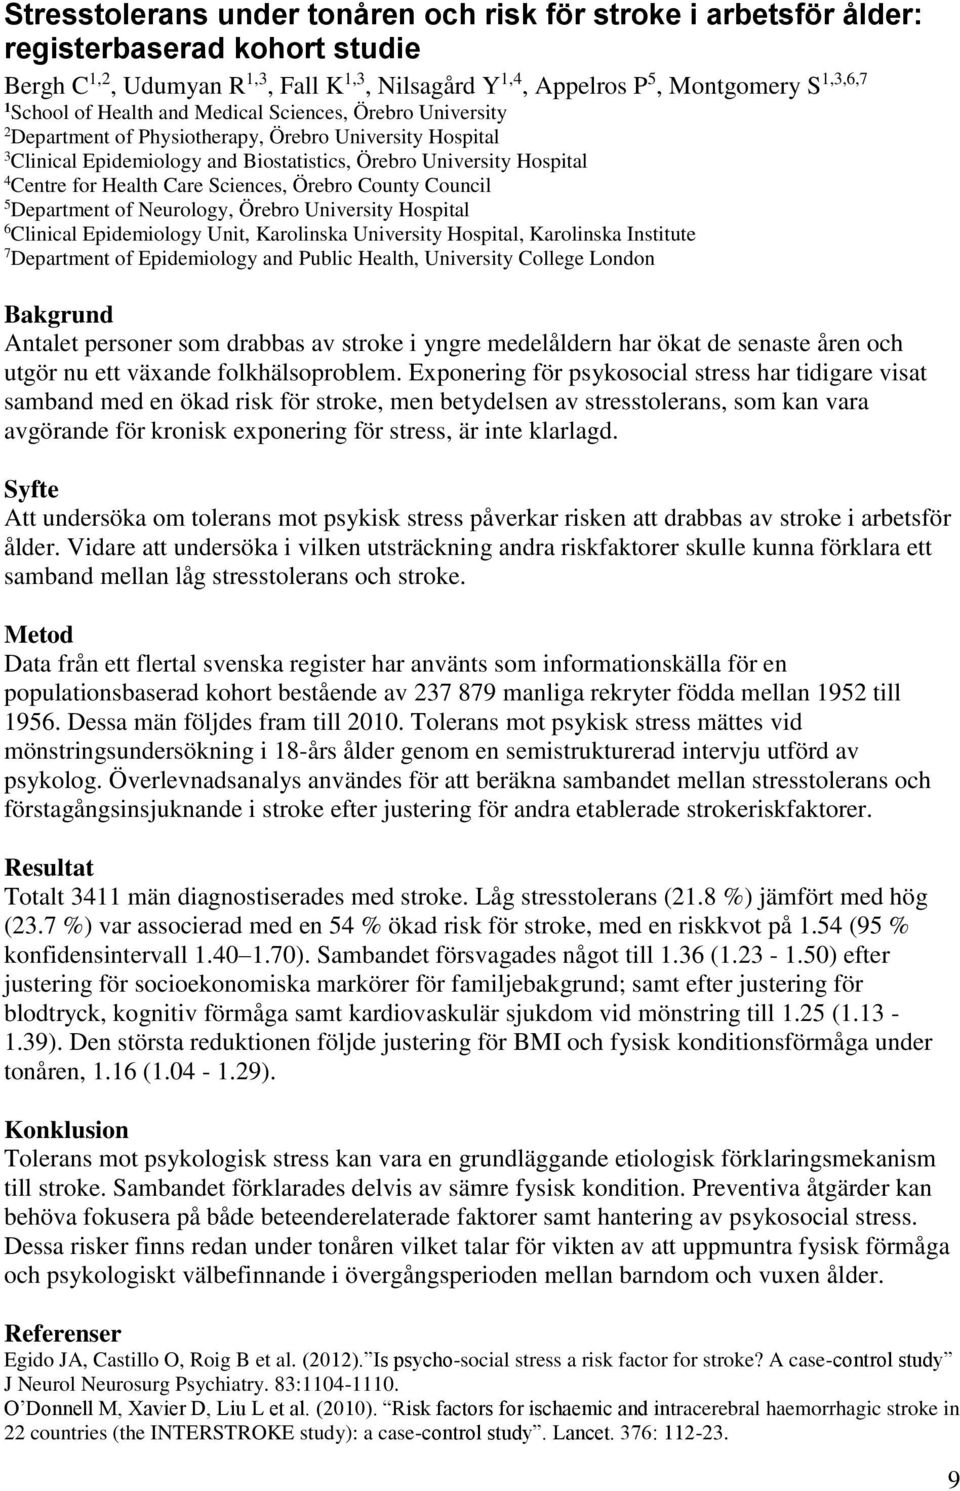 Care Sciences, Örebro County Council 5 Department of Neurology, Örebro University Hospital 6 Clinical Epidemiology Unit, Karolinska University Hospital, Karolinska Institute 7 Department of